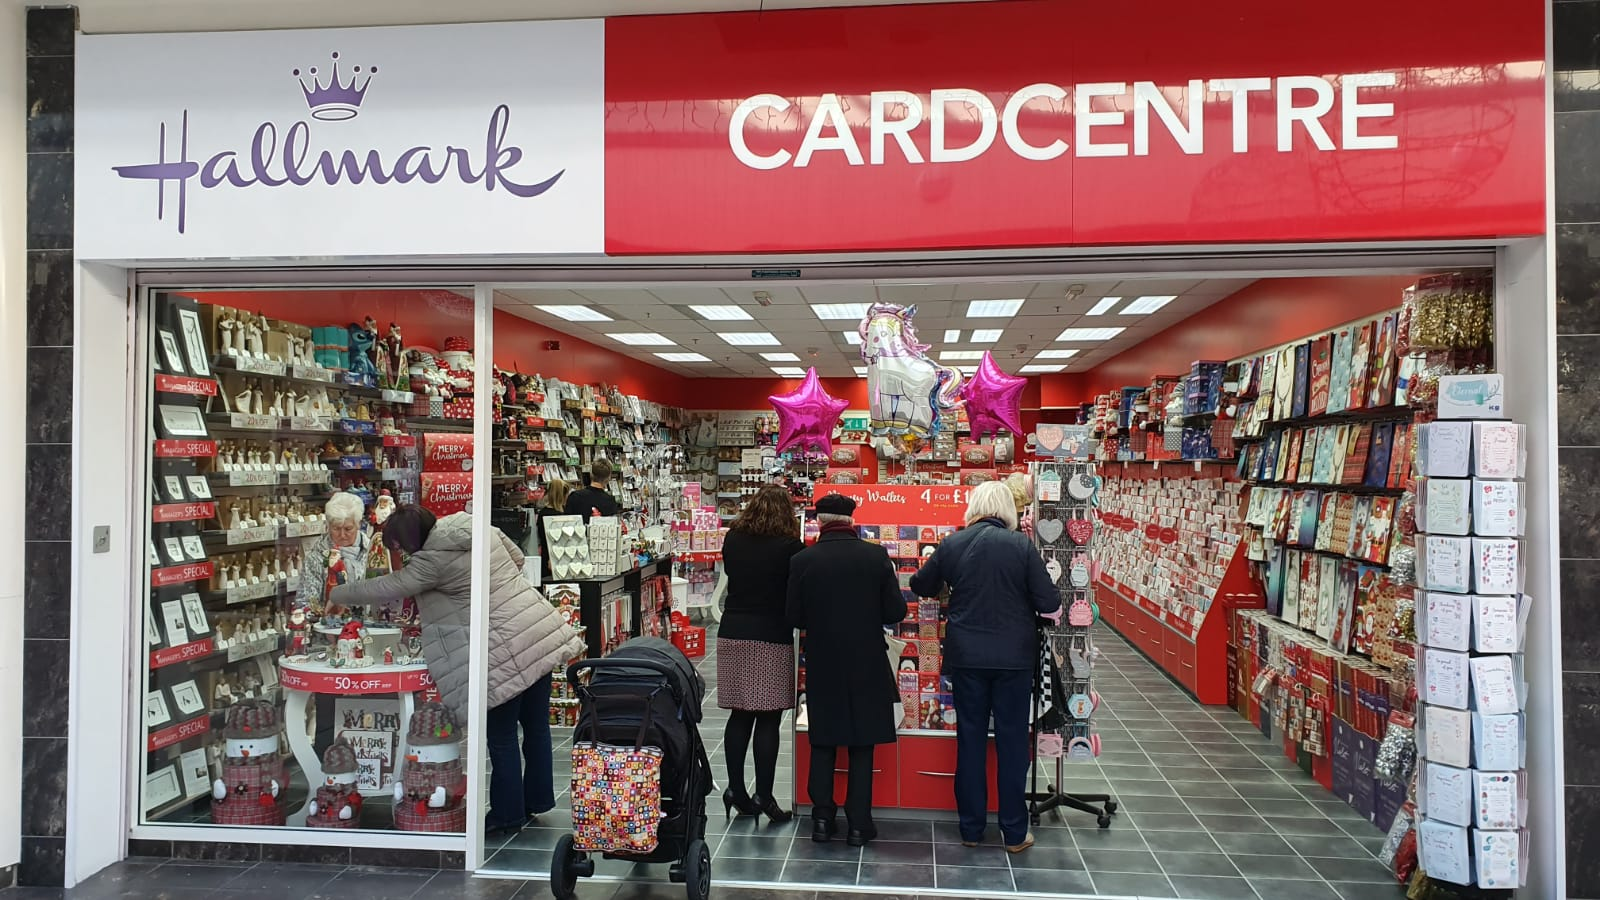 Above: Over 50 of Cardzone's shops have re-opened.